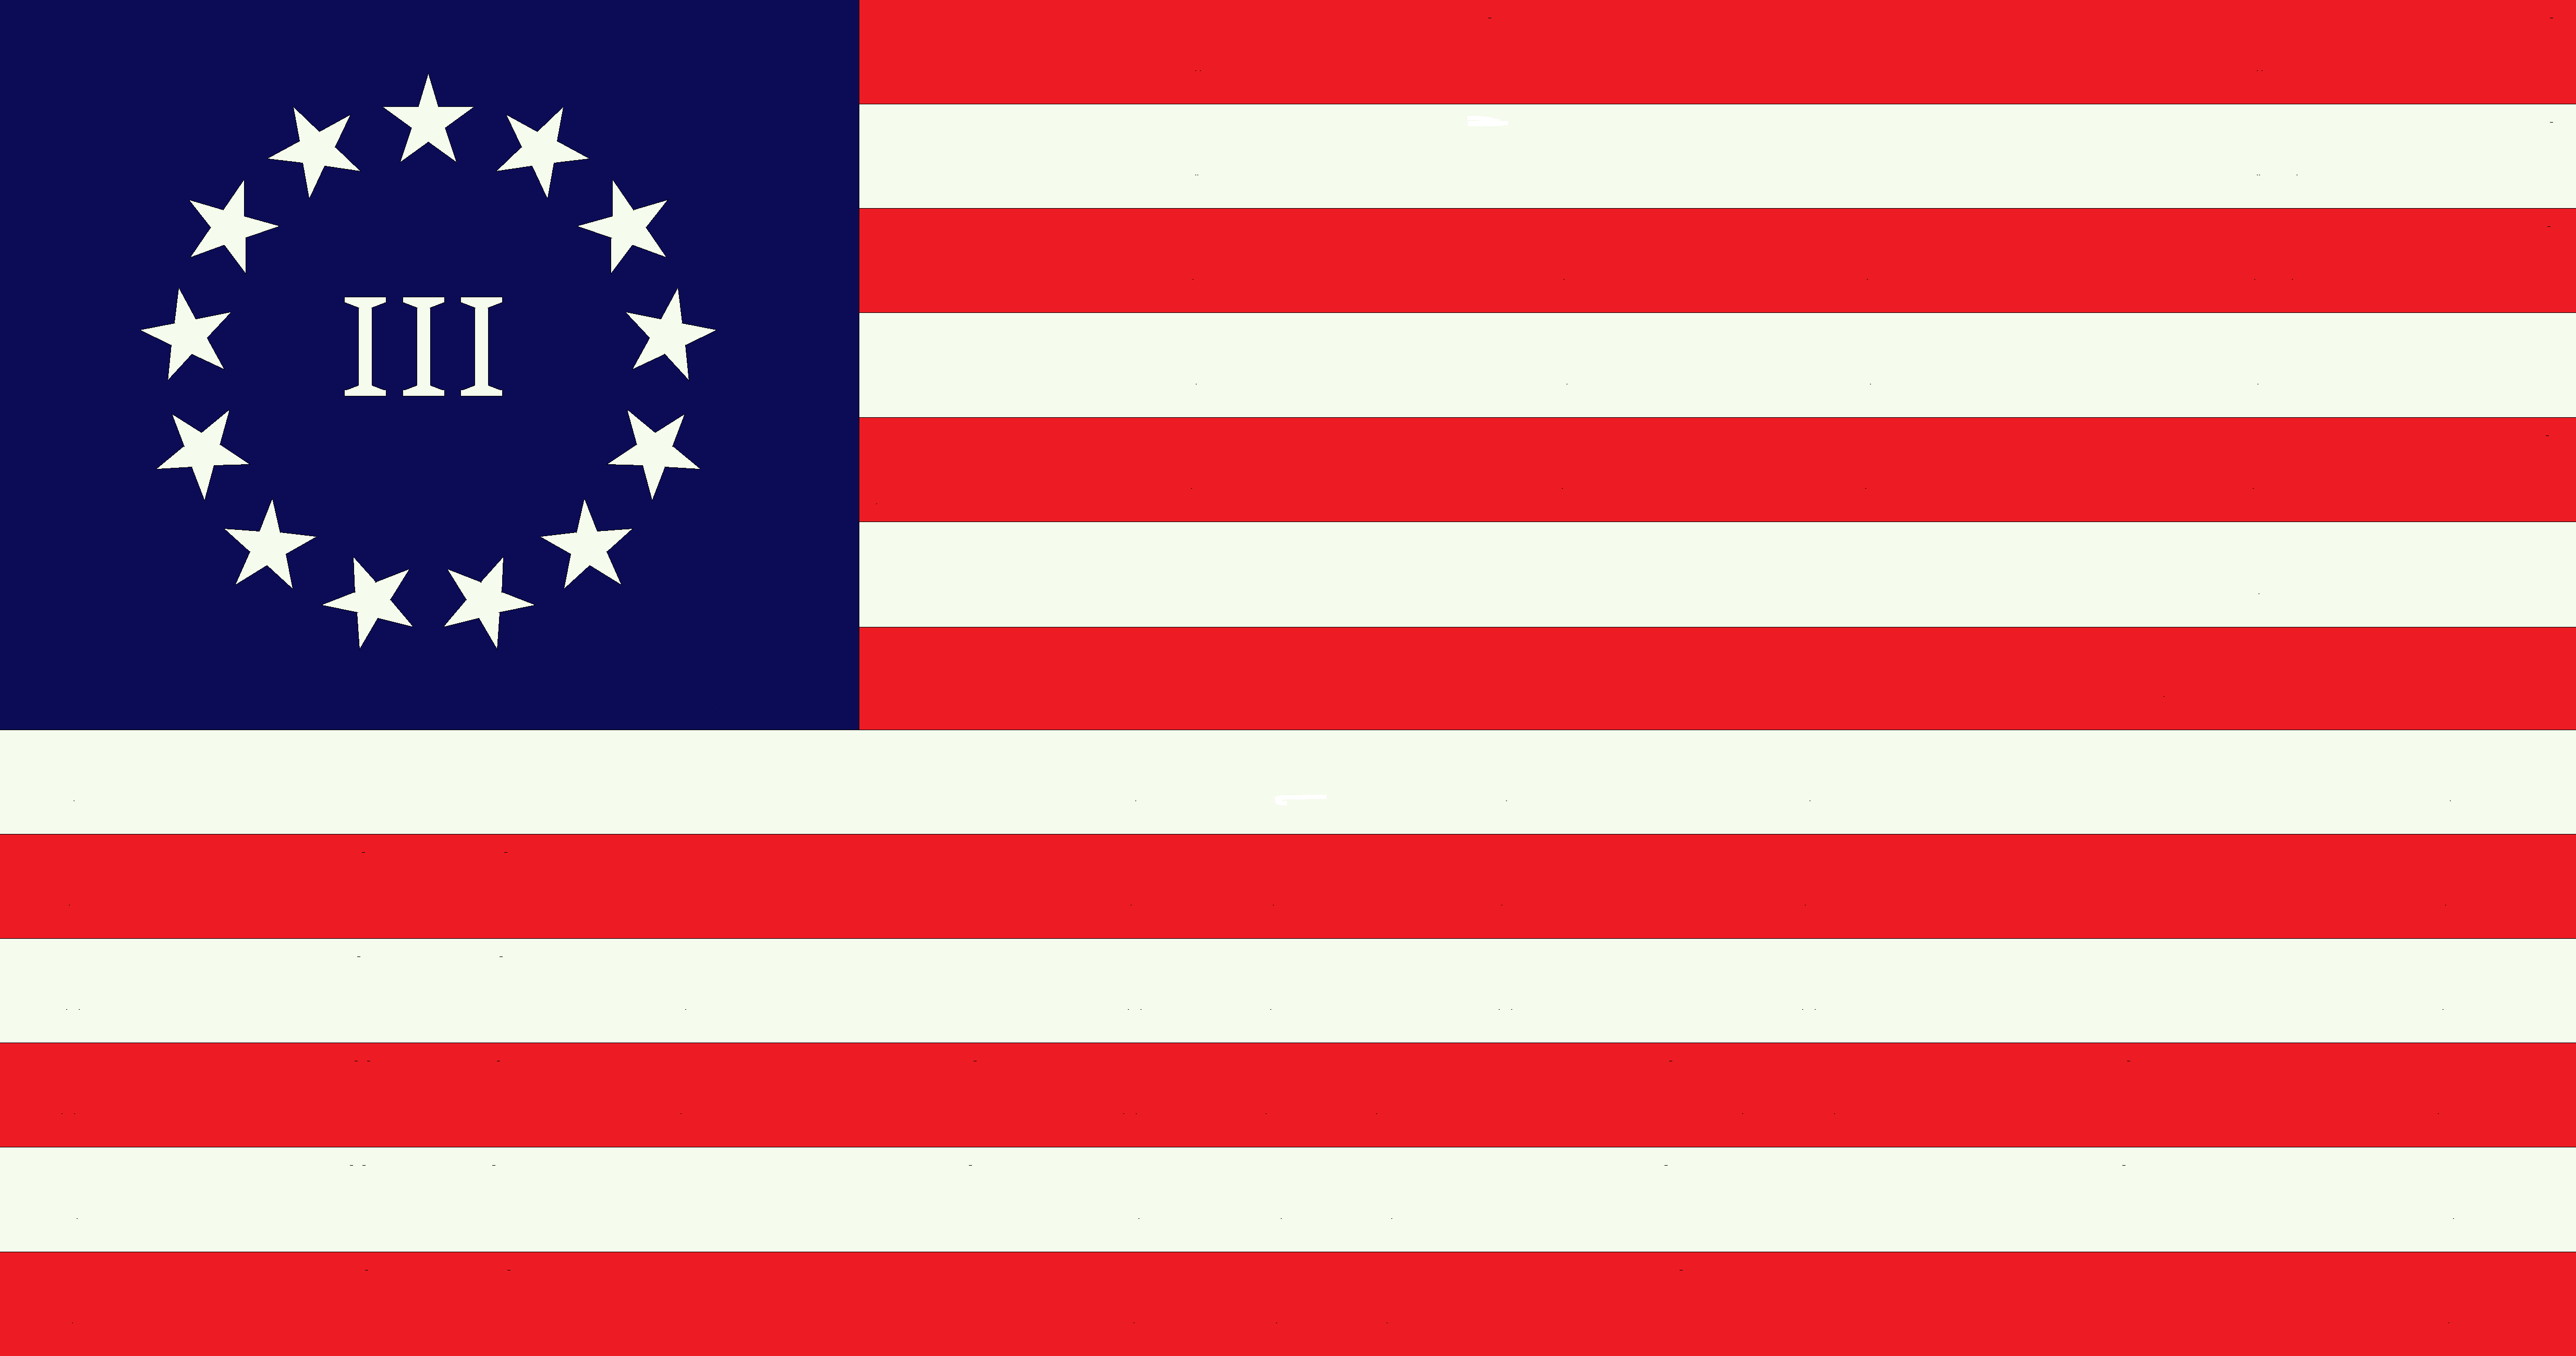 betsy ross flag 3 by bagera3005 on deviantart